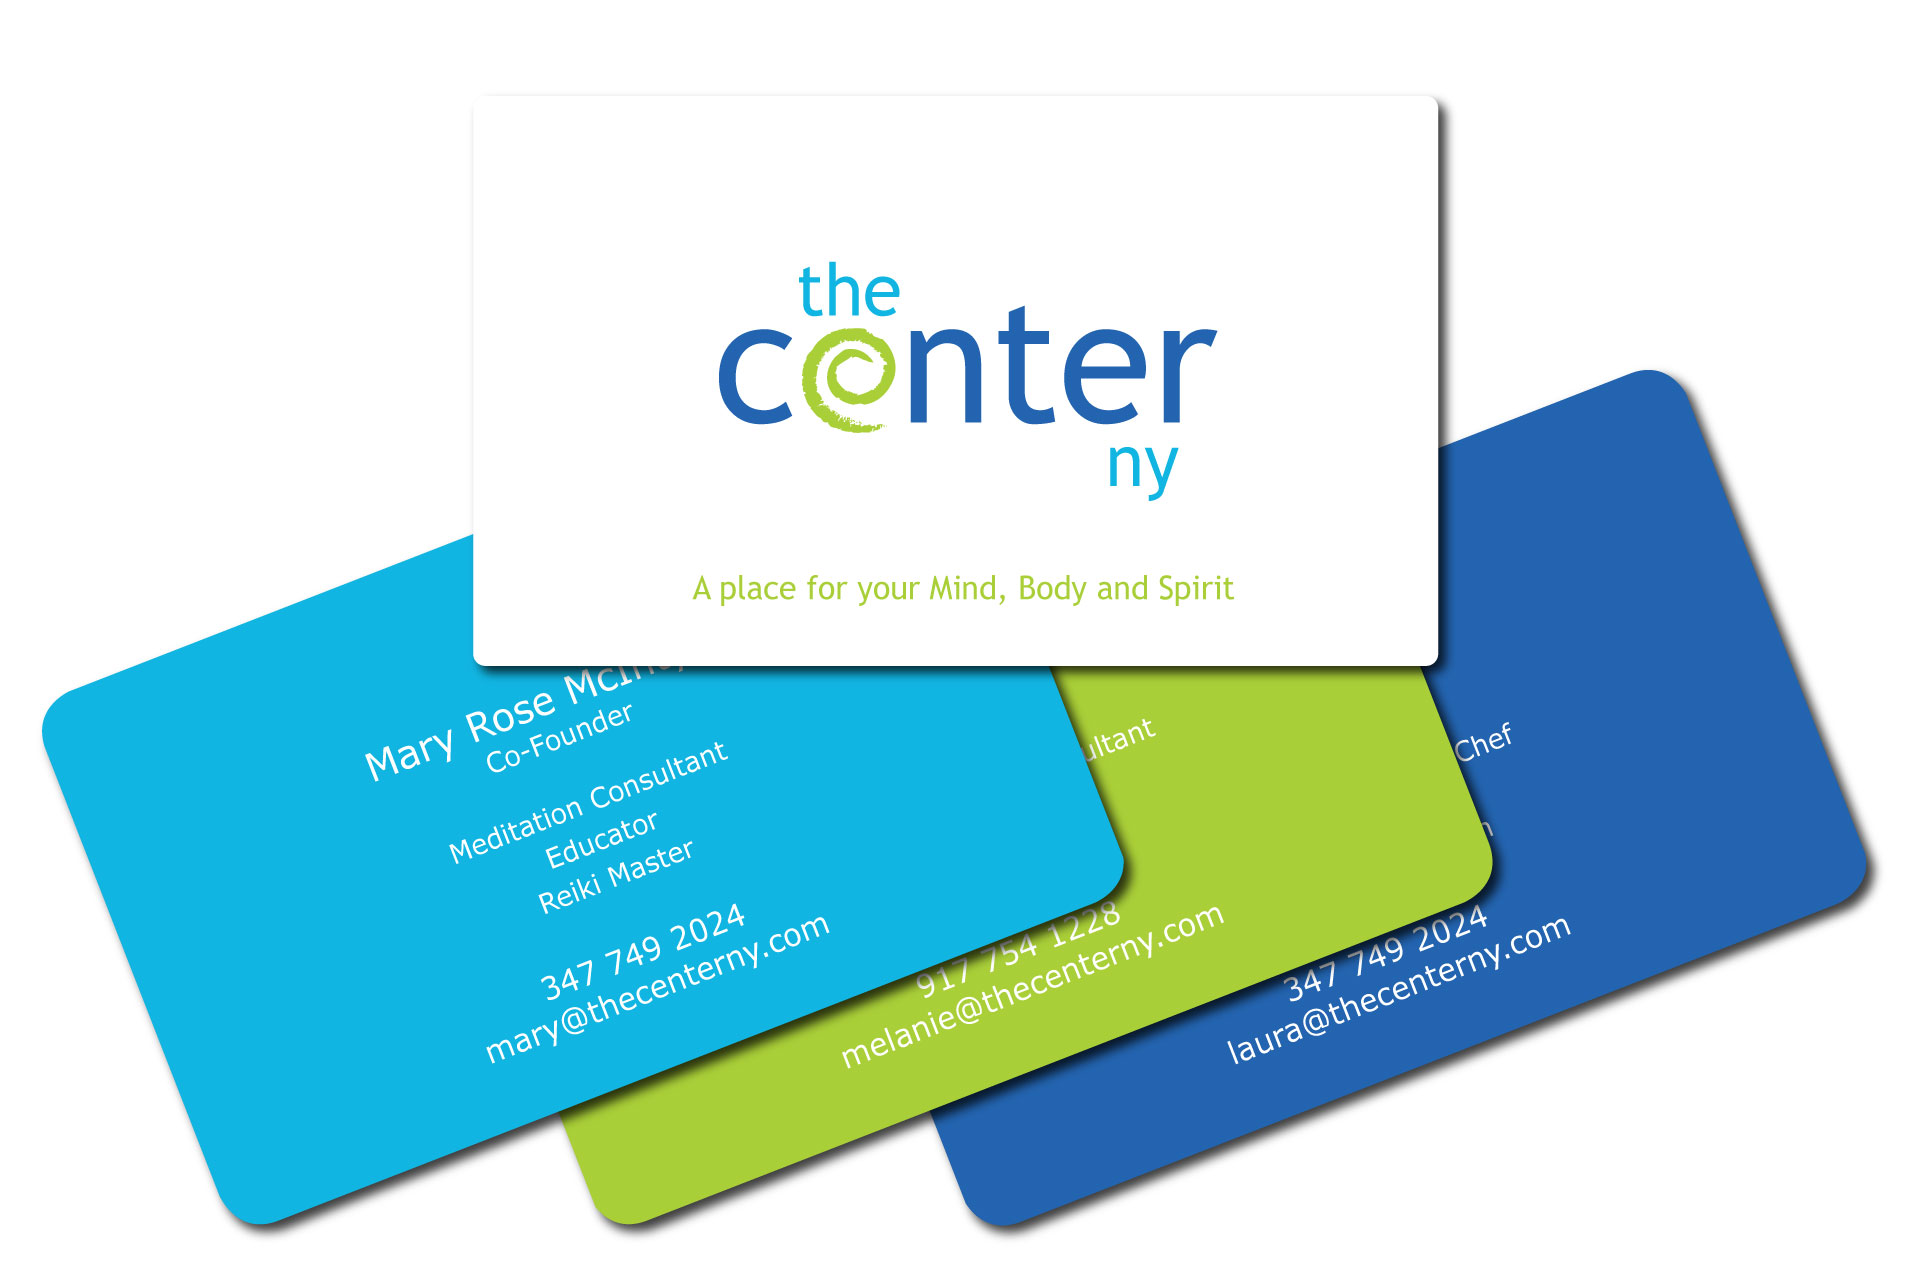 The Center NY Business Card